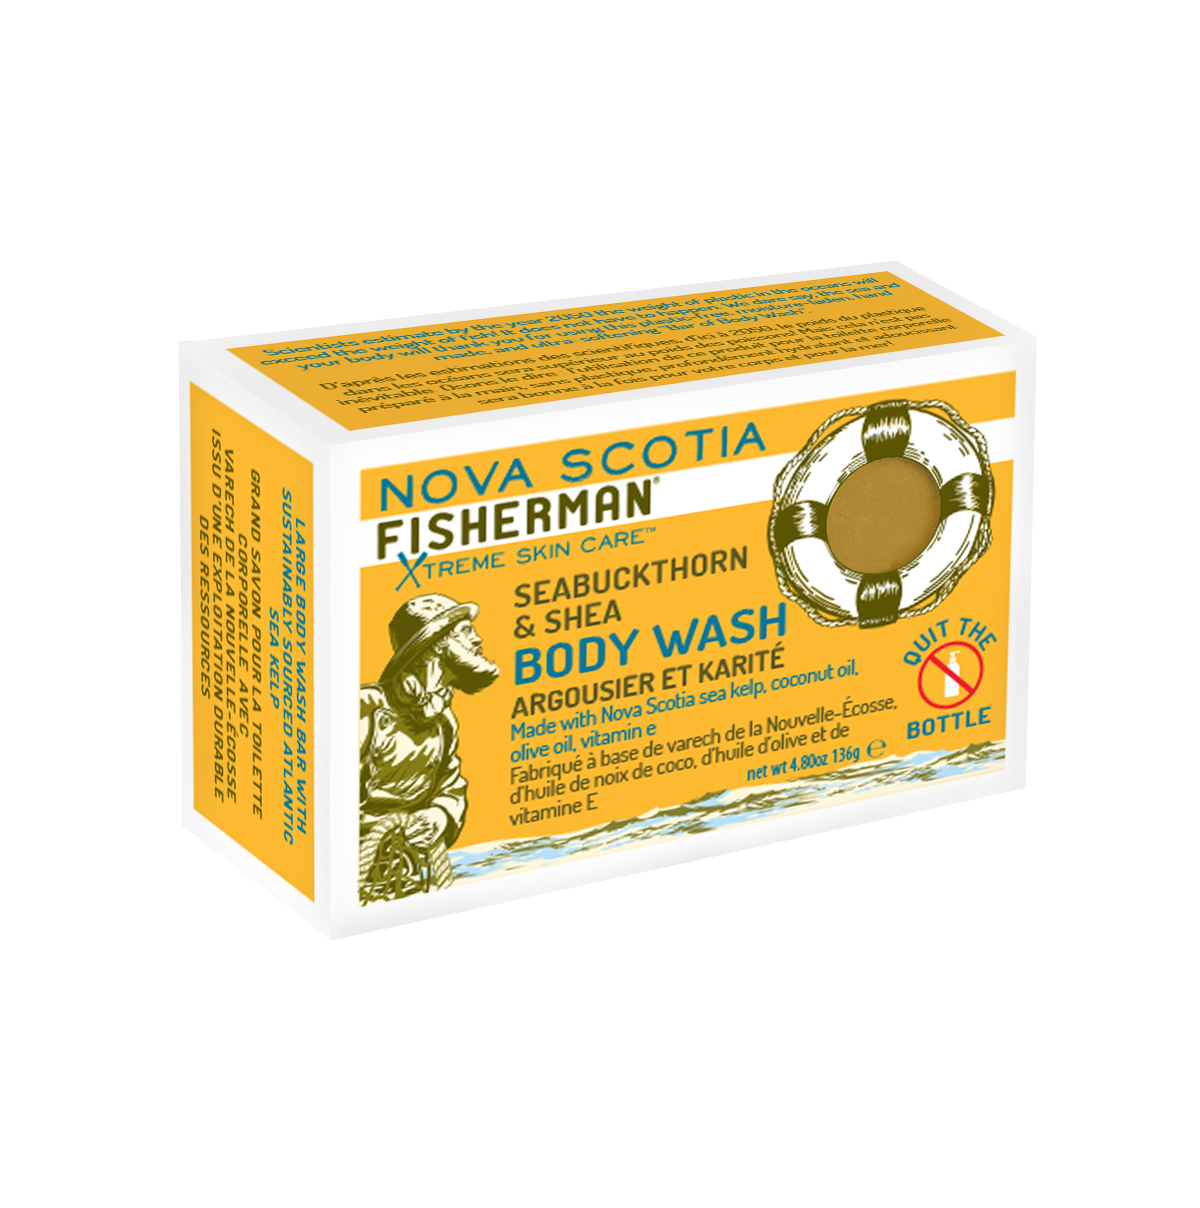 New! Body Wash Bar - Seabuckthorn and Shea - Nova Scotia Fisherman Sea Kelp Skincare